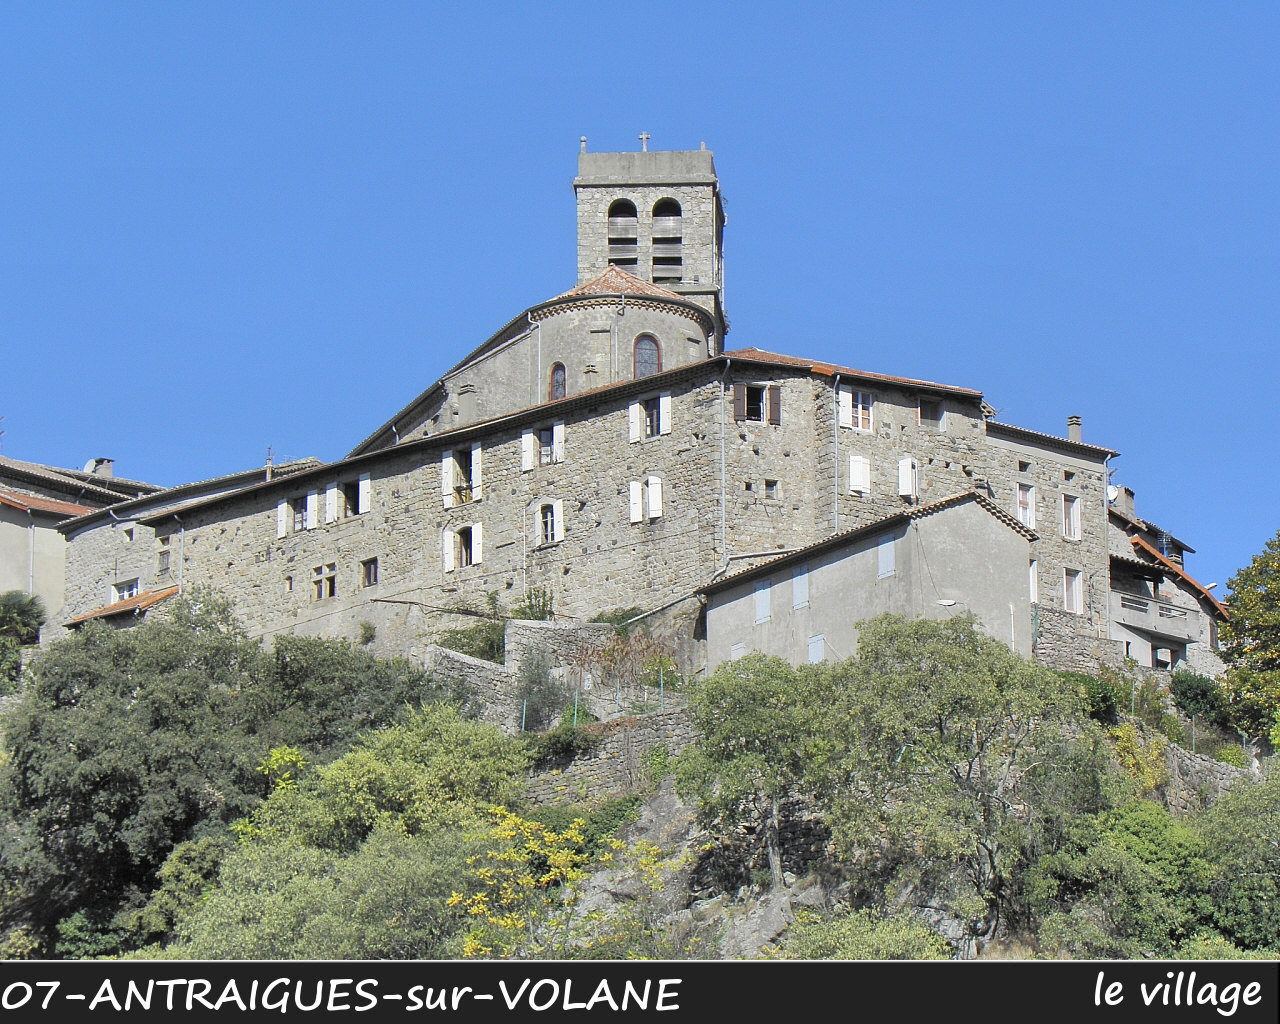 07ANTRAIGUES-VOLANE_village_102.jpg